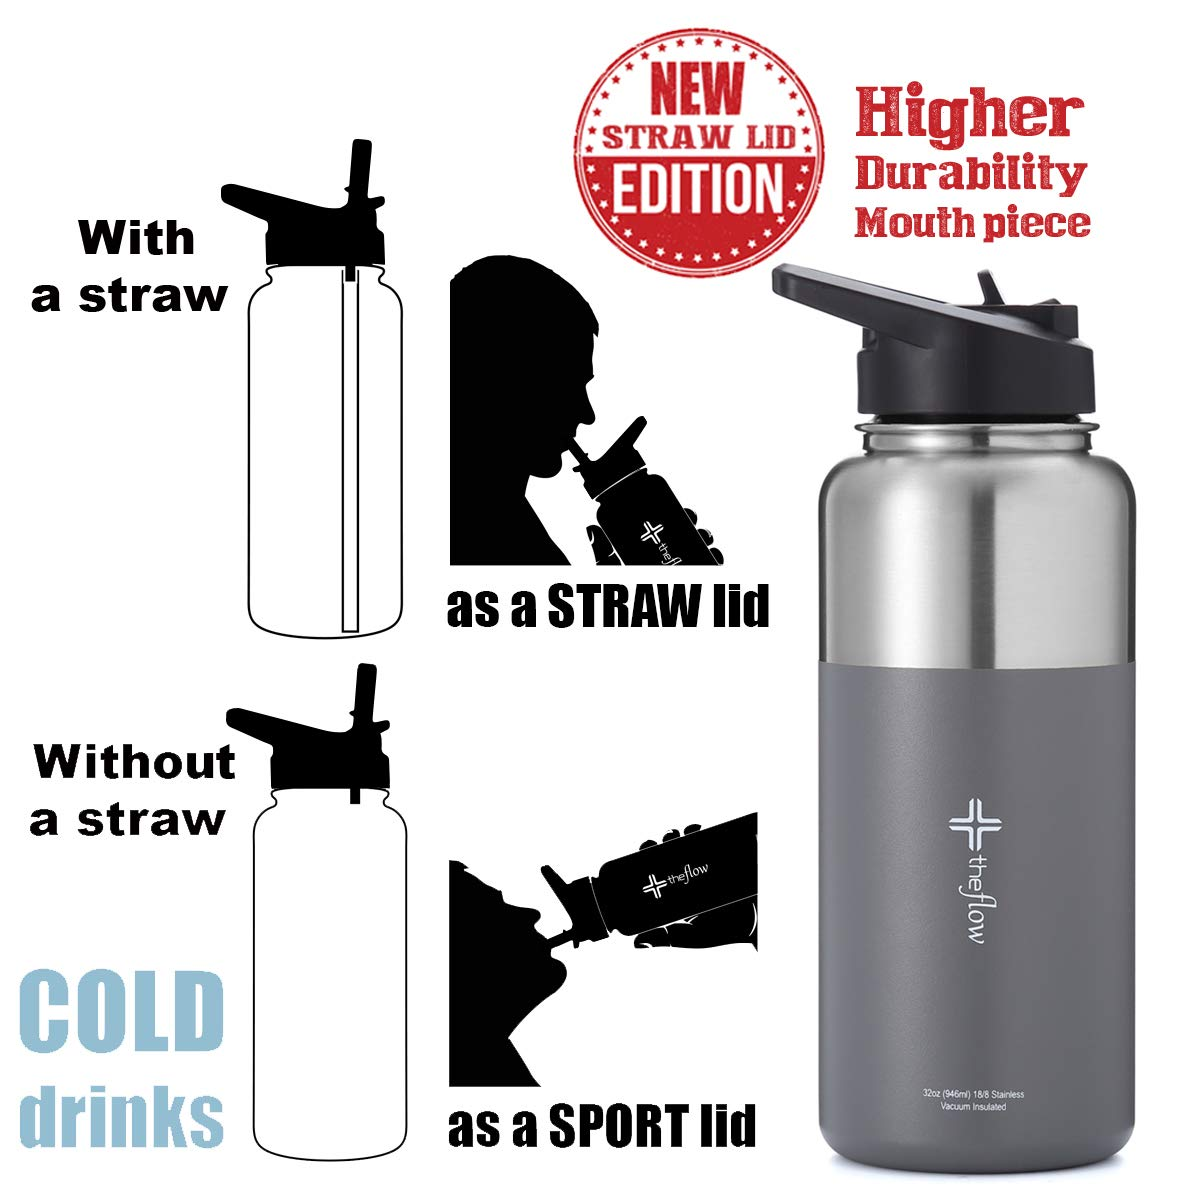 Water Bottle Stainless Steel BPA /& Toxin Free RED Double Walled Thermal Insulated Wide Mouth Flask Coldest Sports Outdoor Drinking 32 oz with STRAW Lid